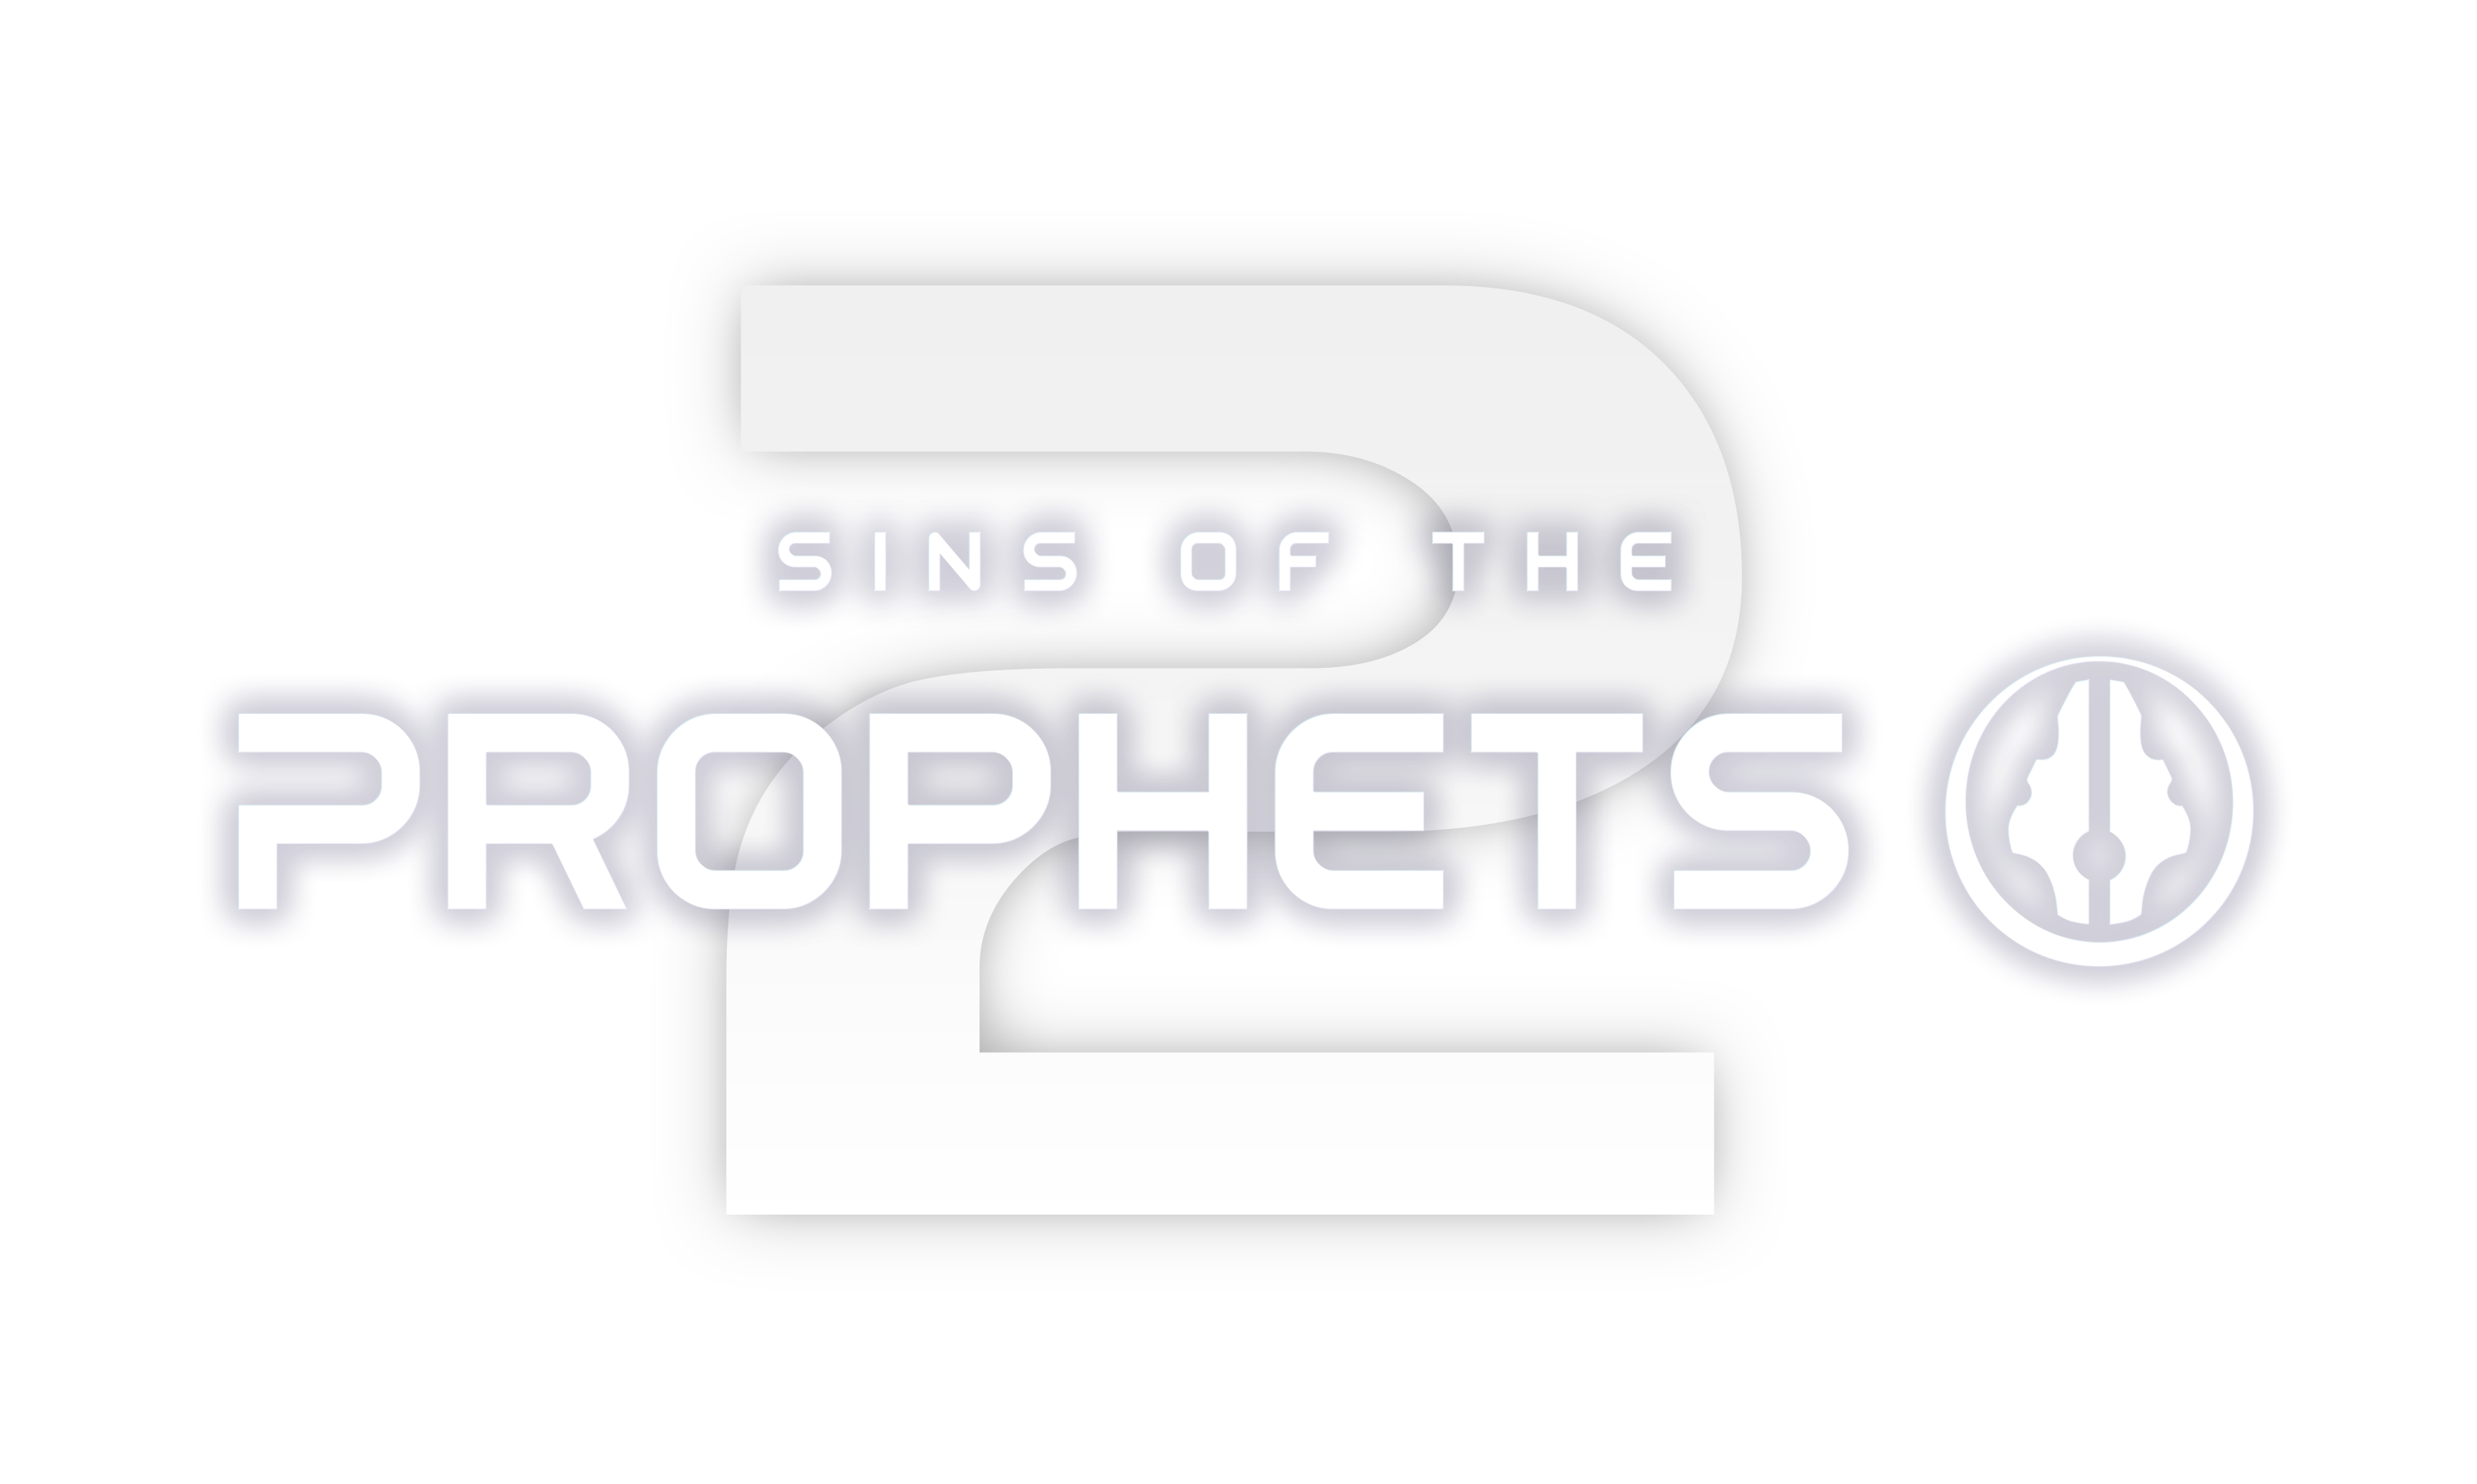 Sins of the Prophets 2 Logo